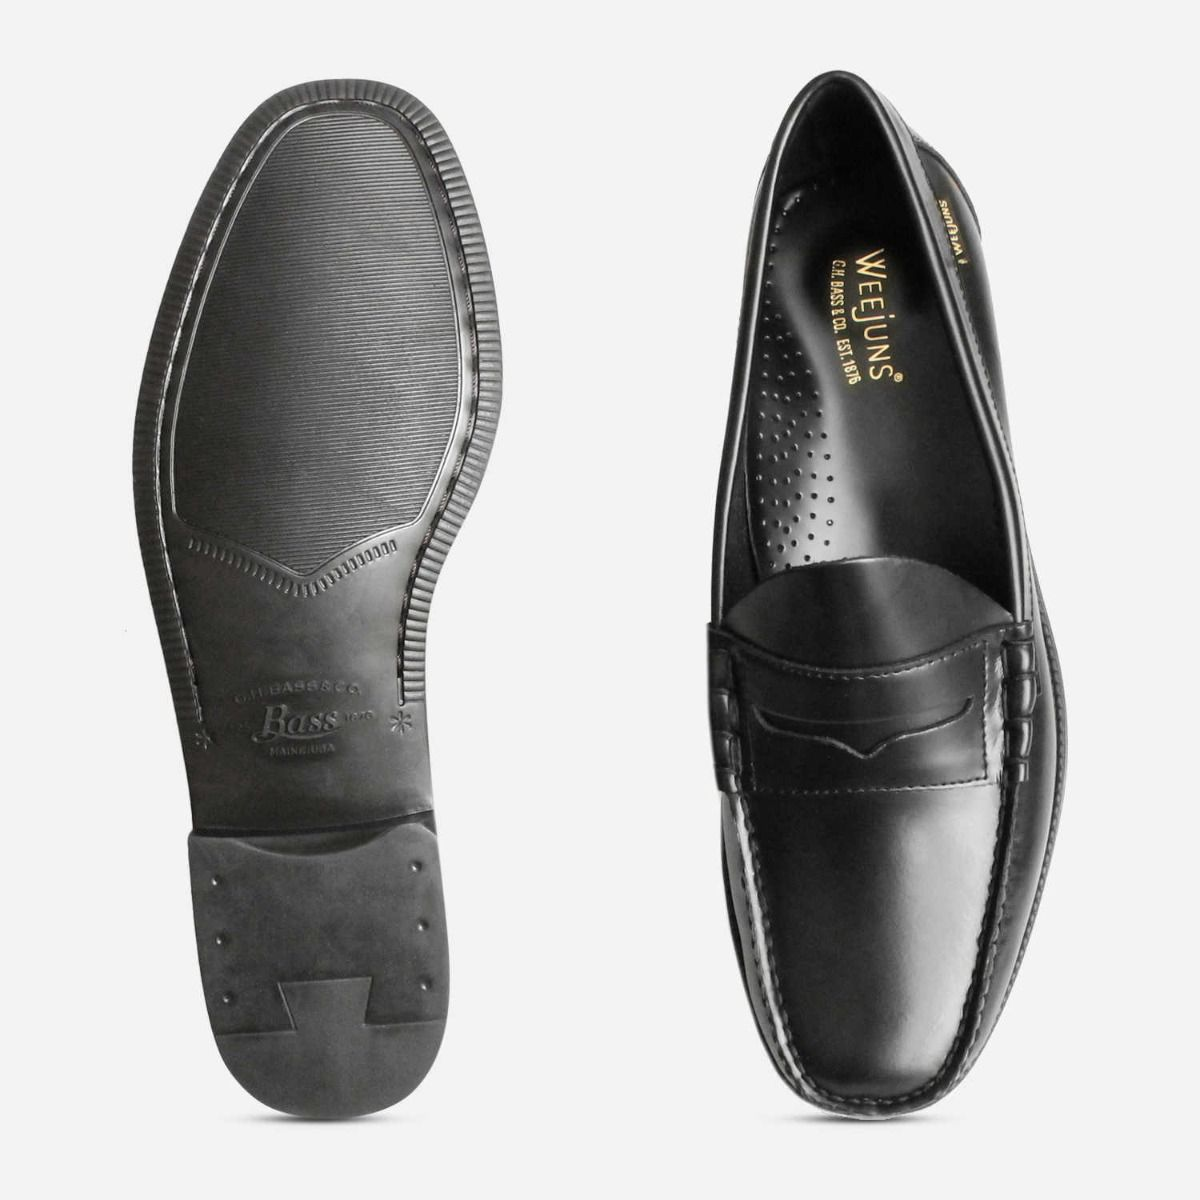 Formal Black Larson Bass Weejun II Loafers with Rubber Sole